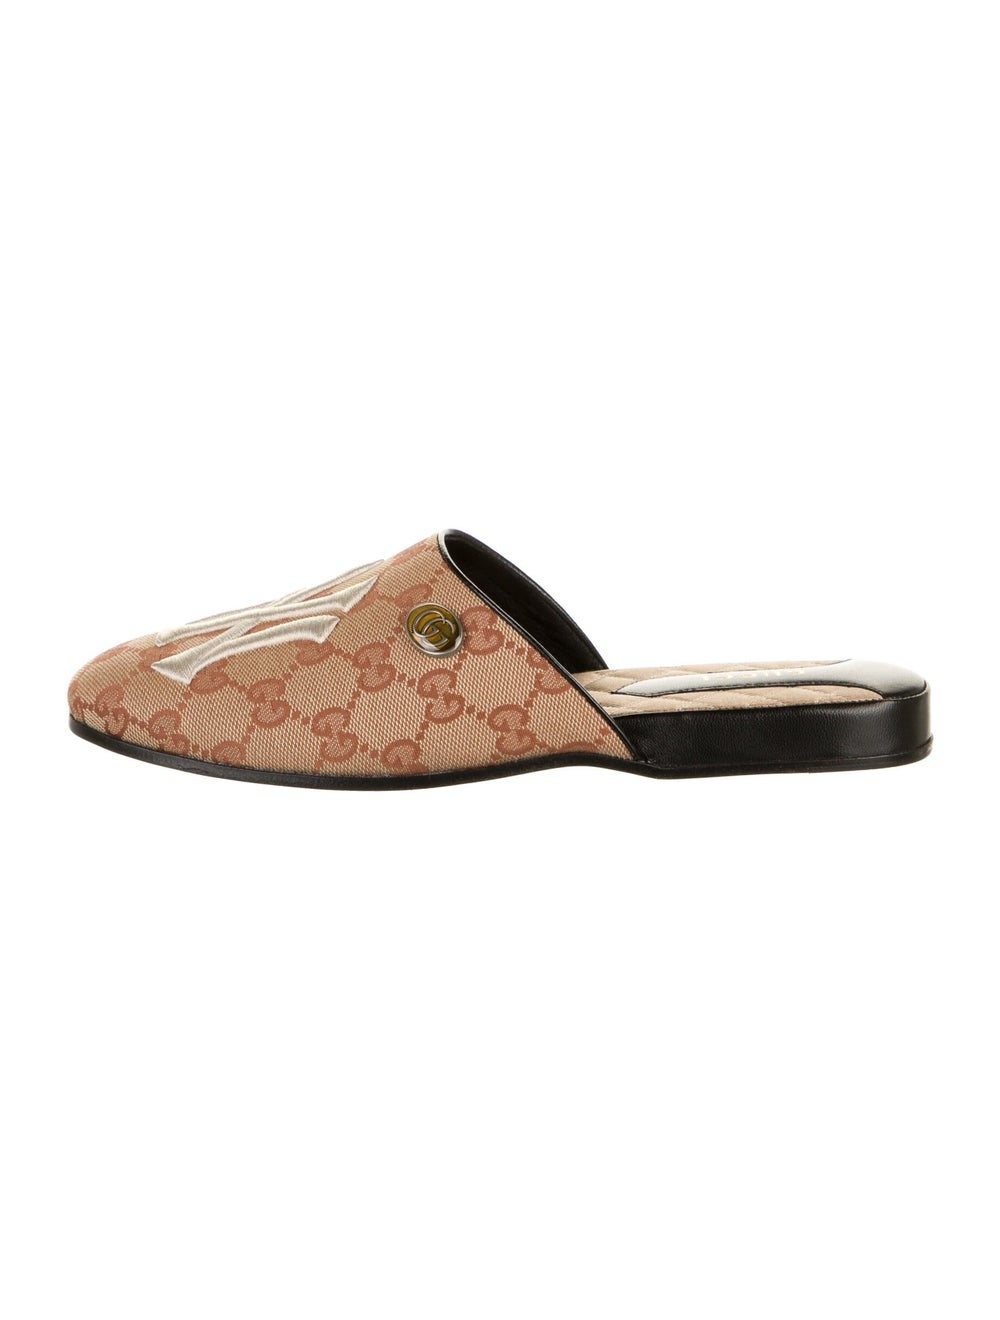 Gucci NY Yankees GG Canvas Mules w/ Tags - image 1